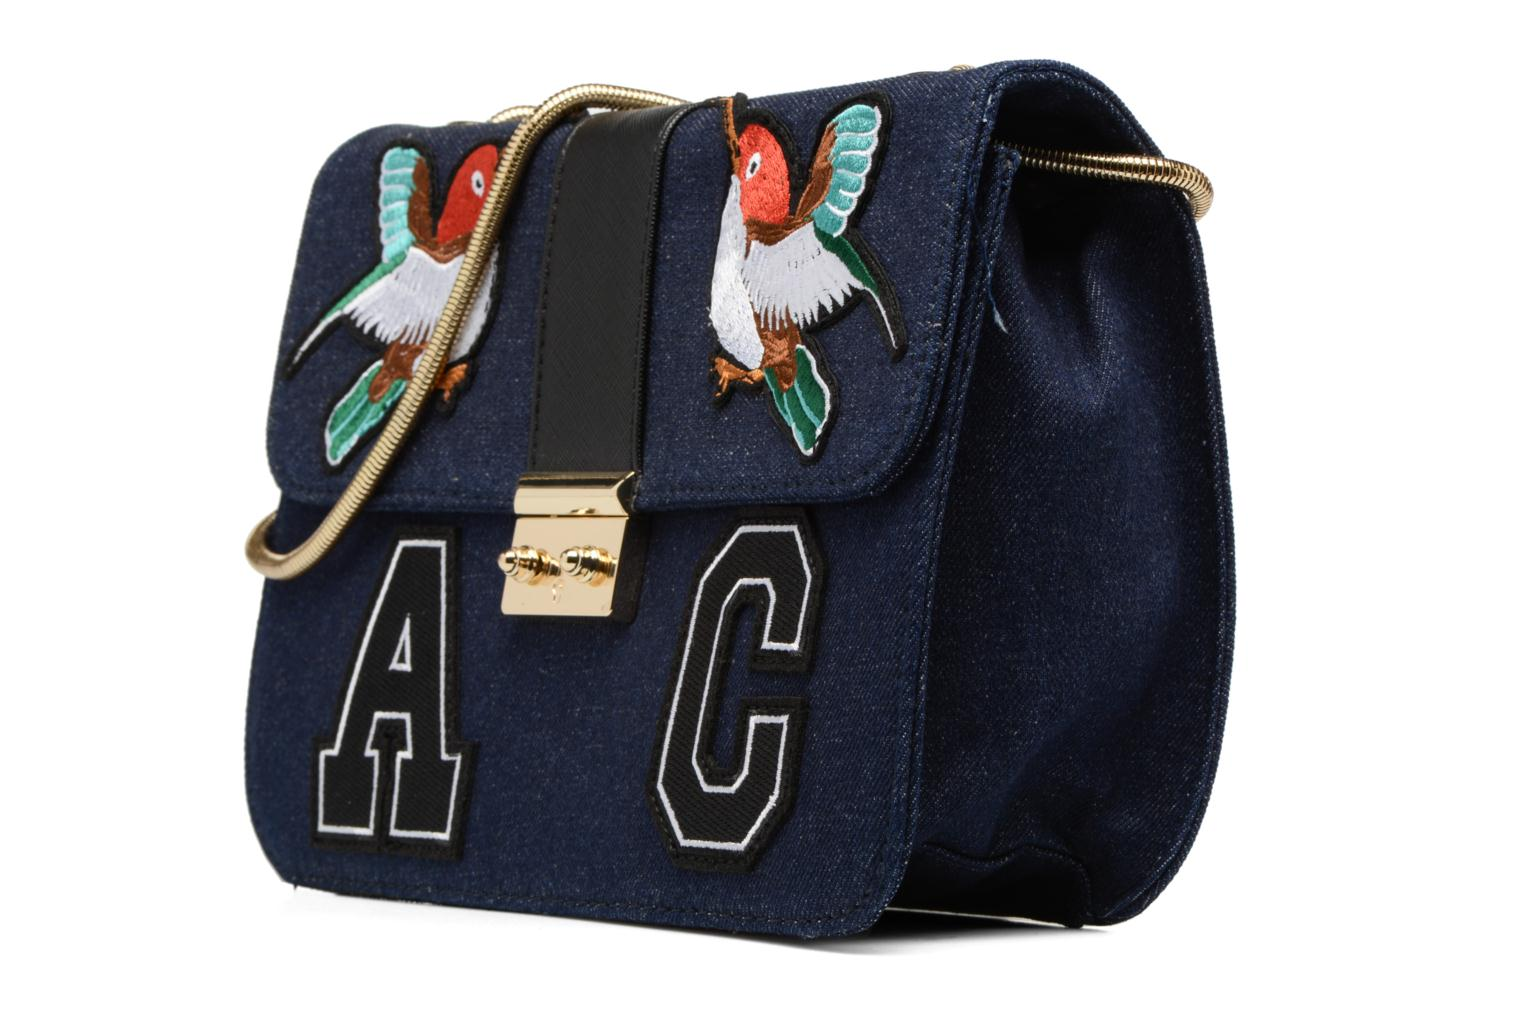 Jeans Shoulder bag L Patch L'Aetelier CATY Caesars avwqx1XE8